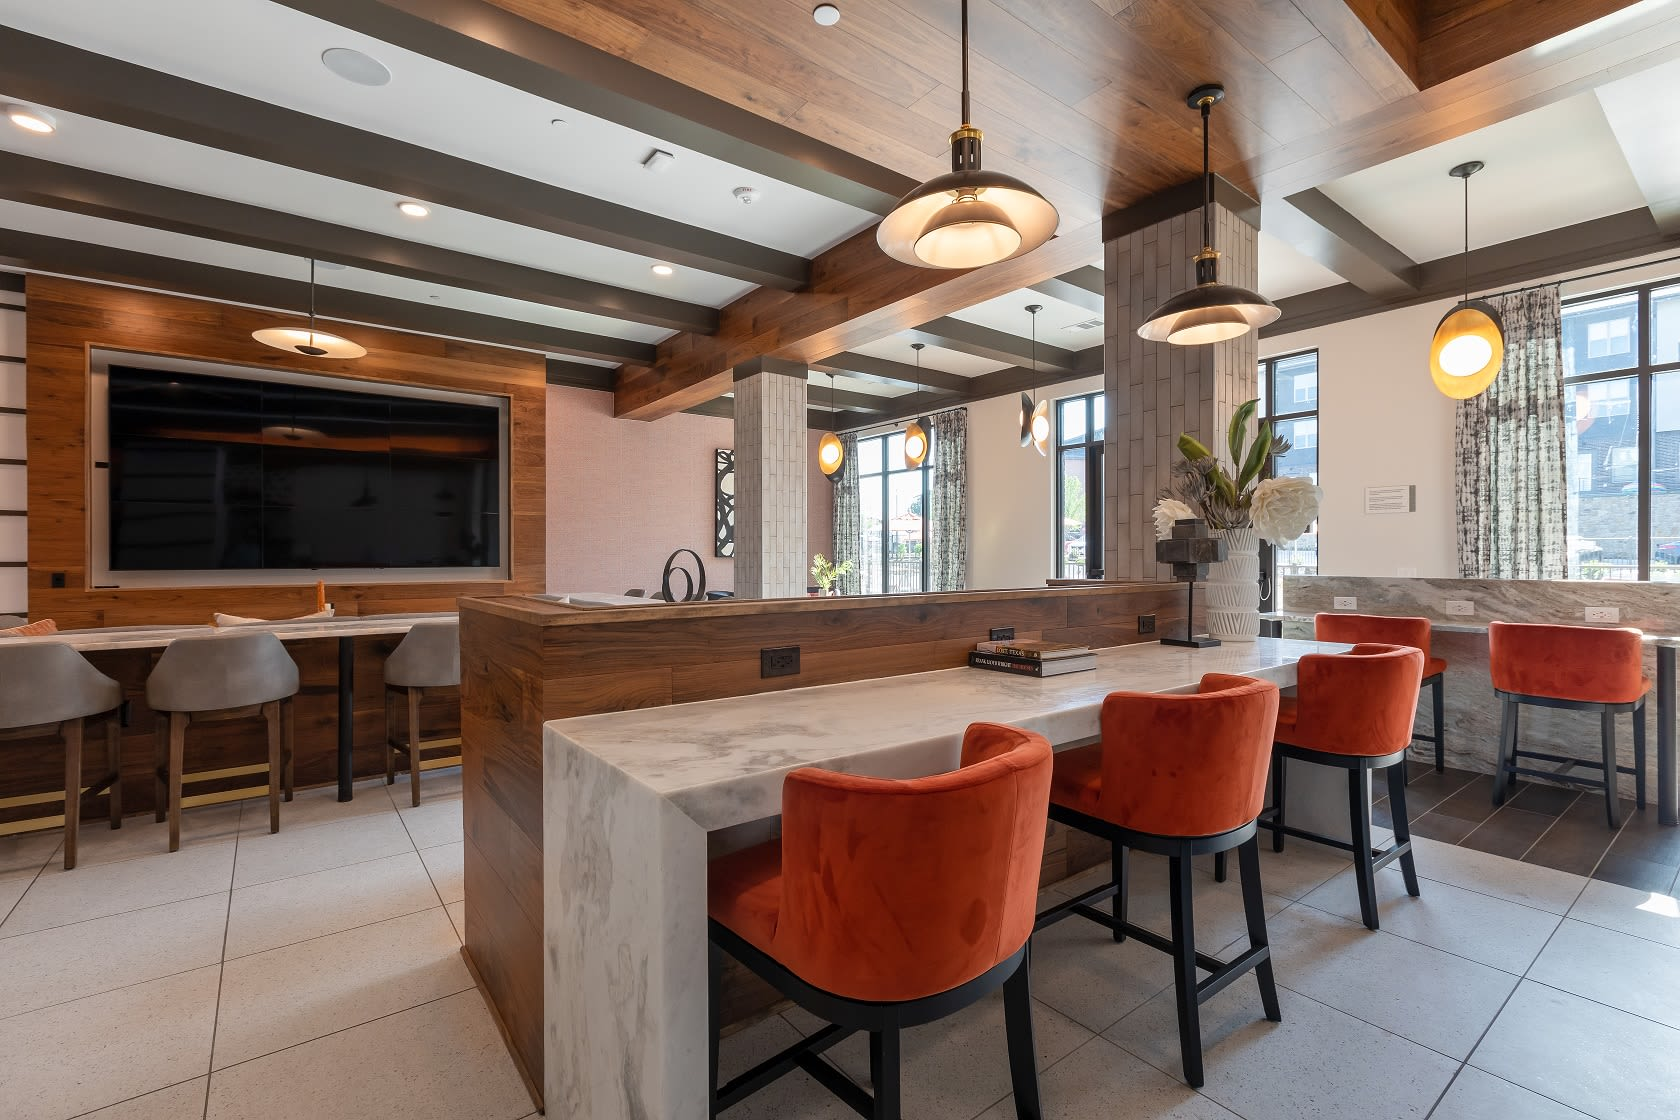 Clubhouse for residents to mingle and work in The ReVe in Garland, Texas